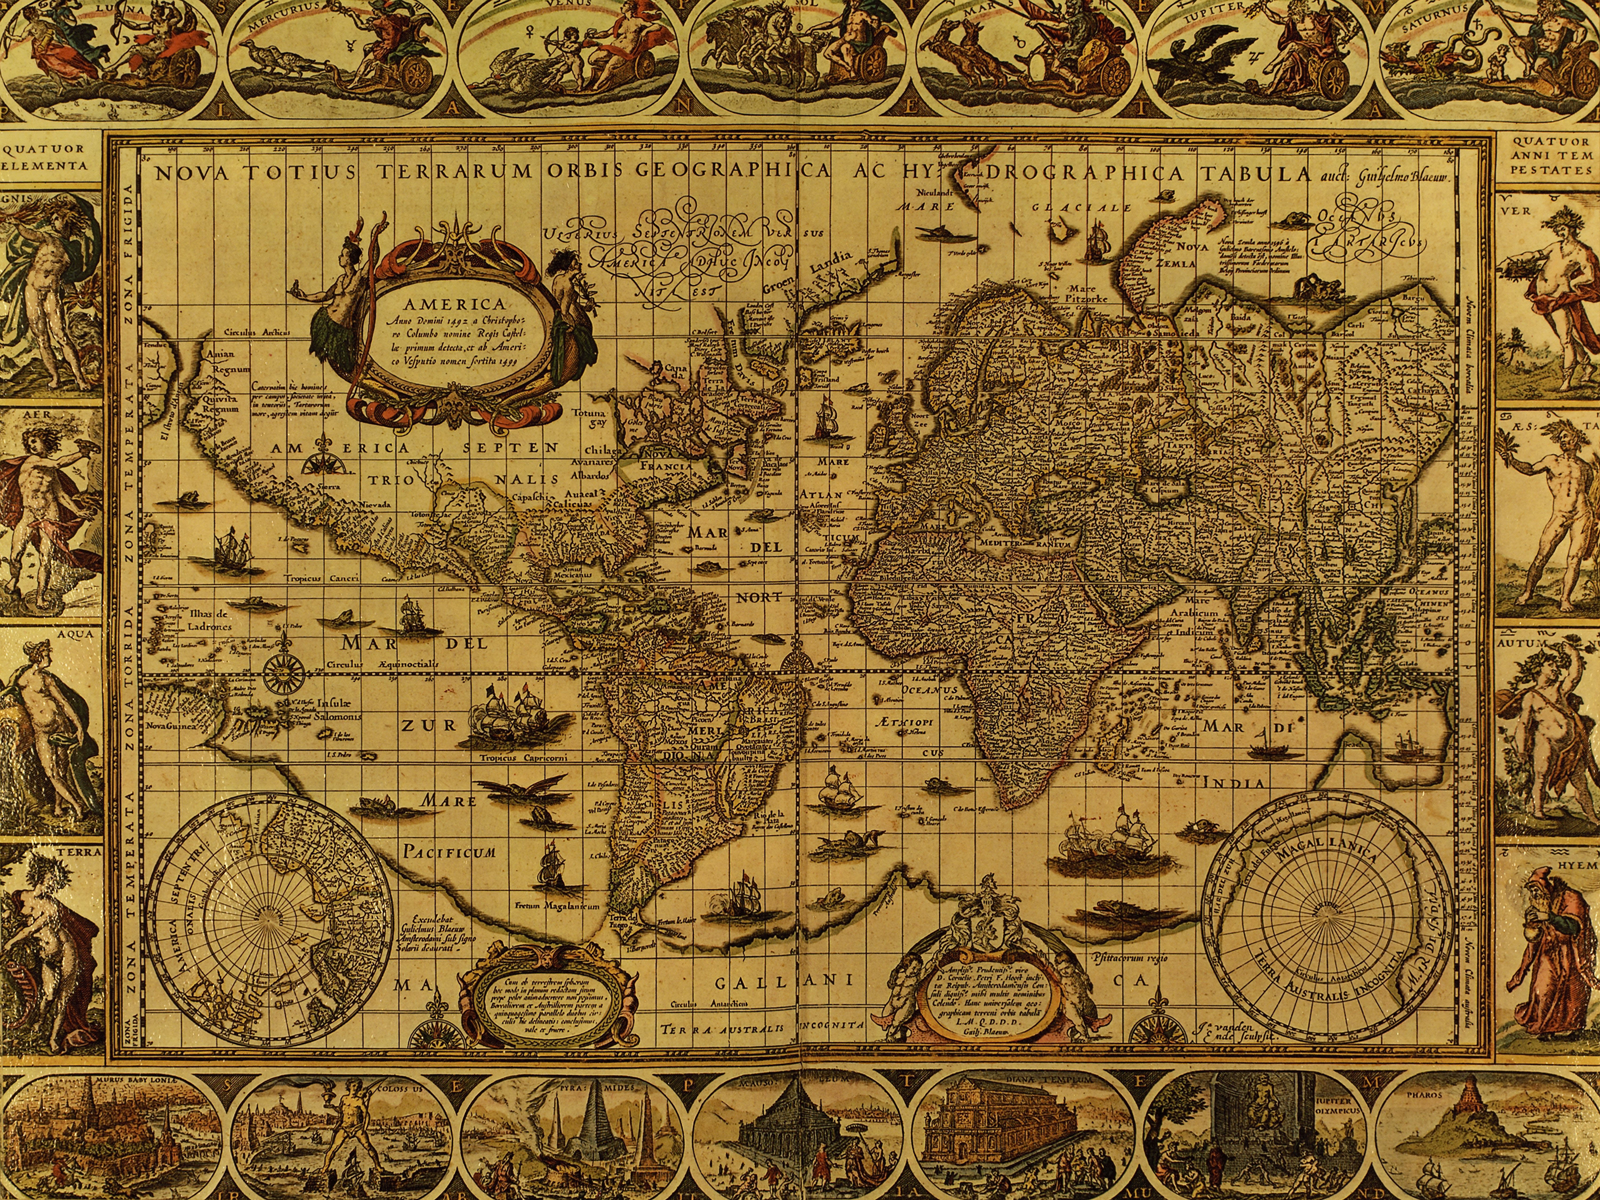 PC 1600x1200 px Vintage Maps Wallpaper, BsnSCB